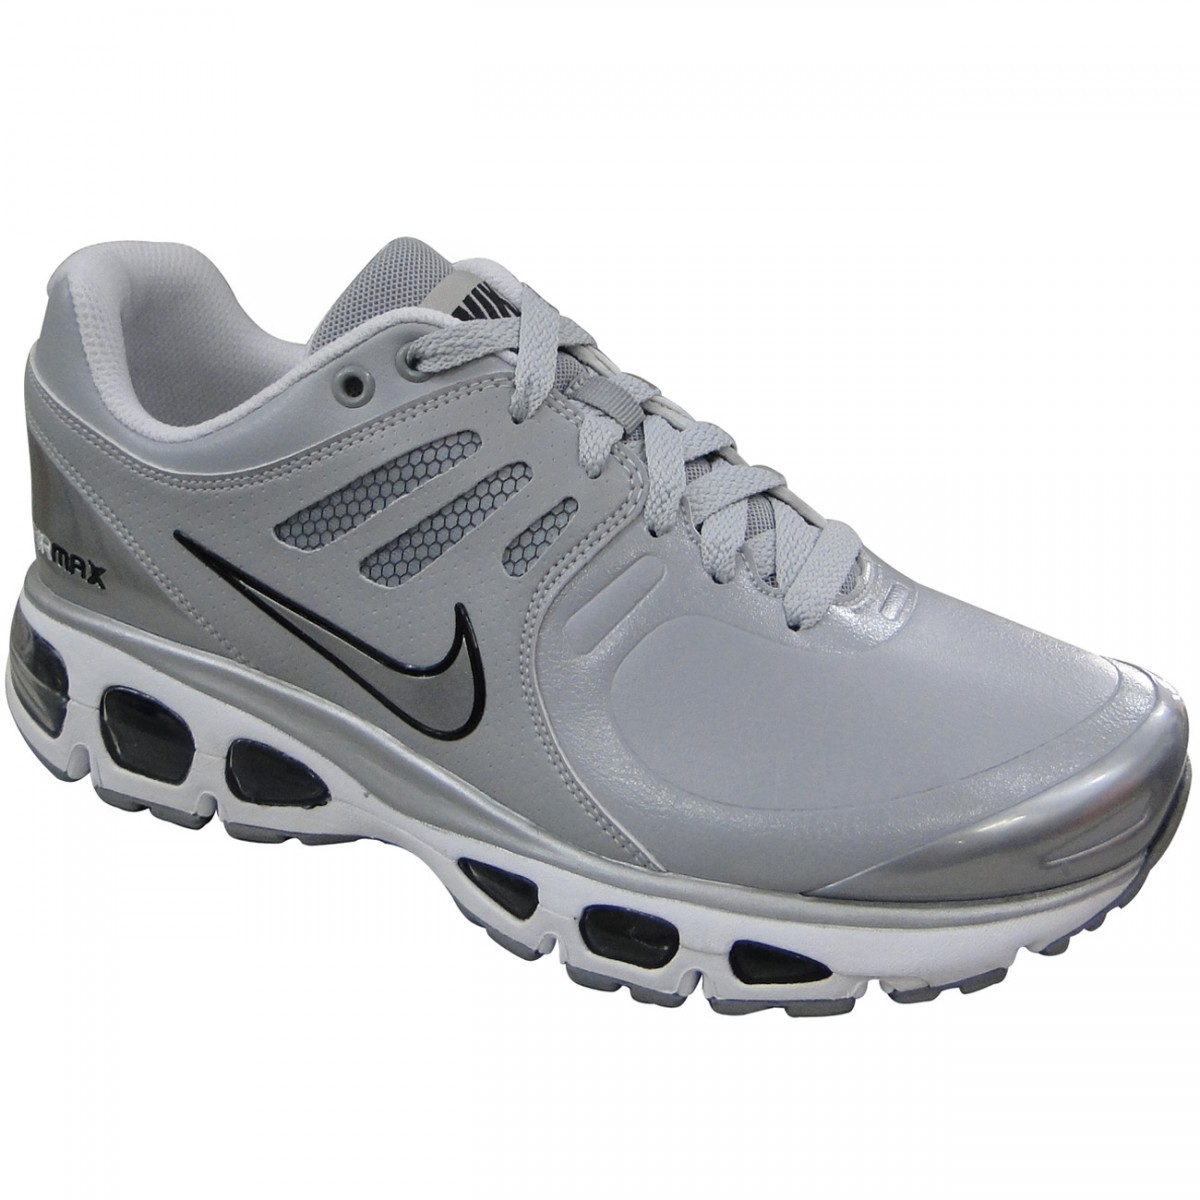 Womens Nike Air Max Tailwind 6 Worldwide Friends Veraldarvinir